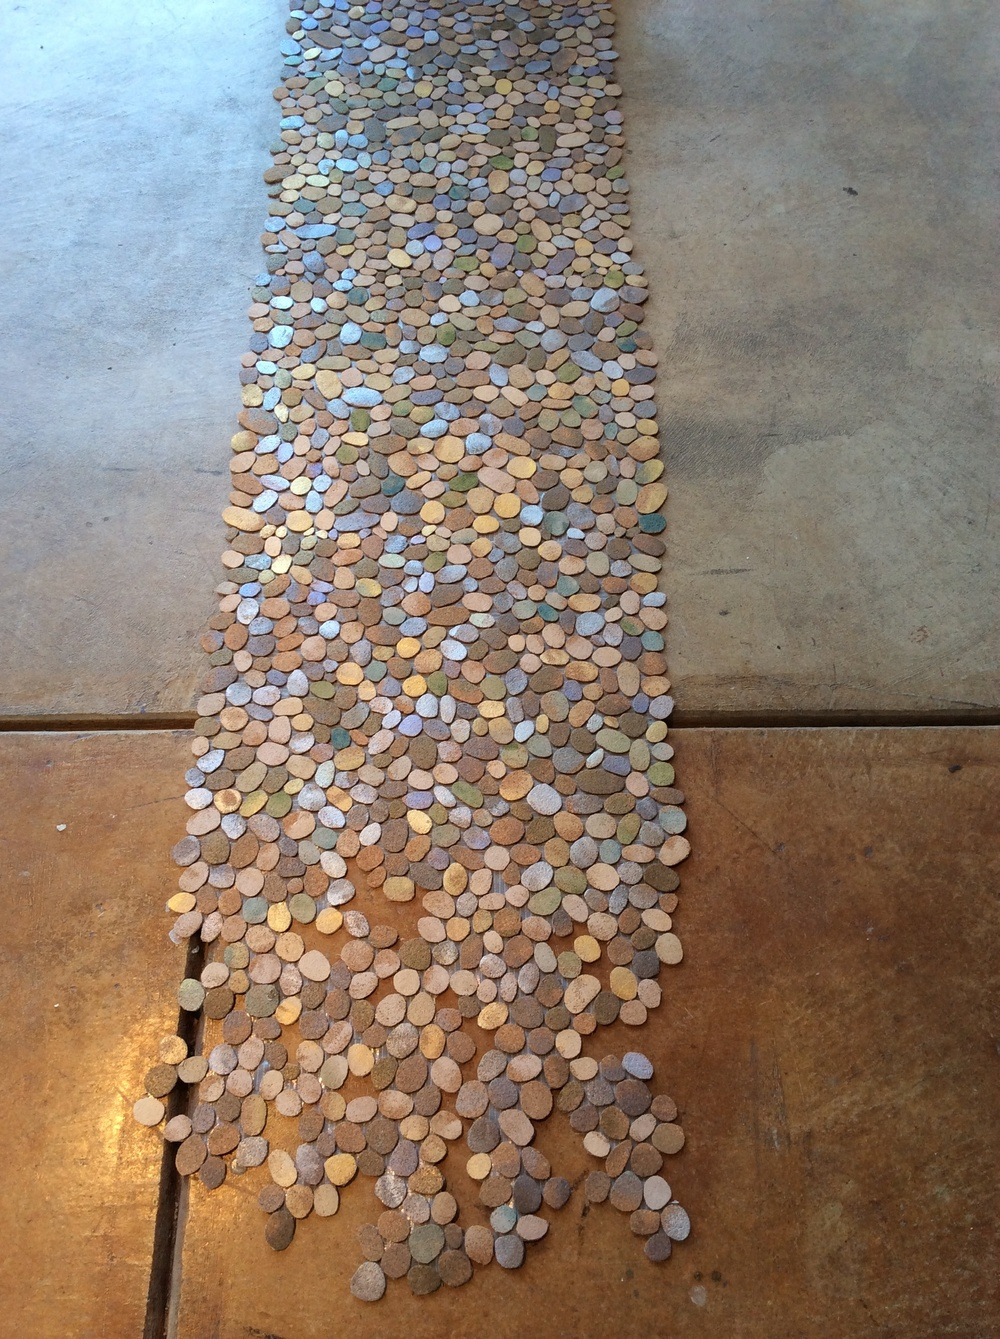 Installation view of cut cork pebbles